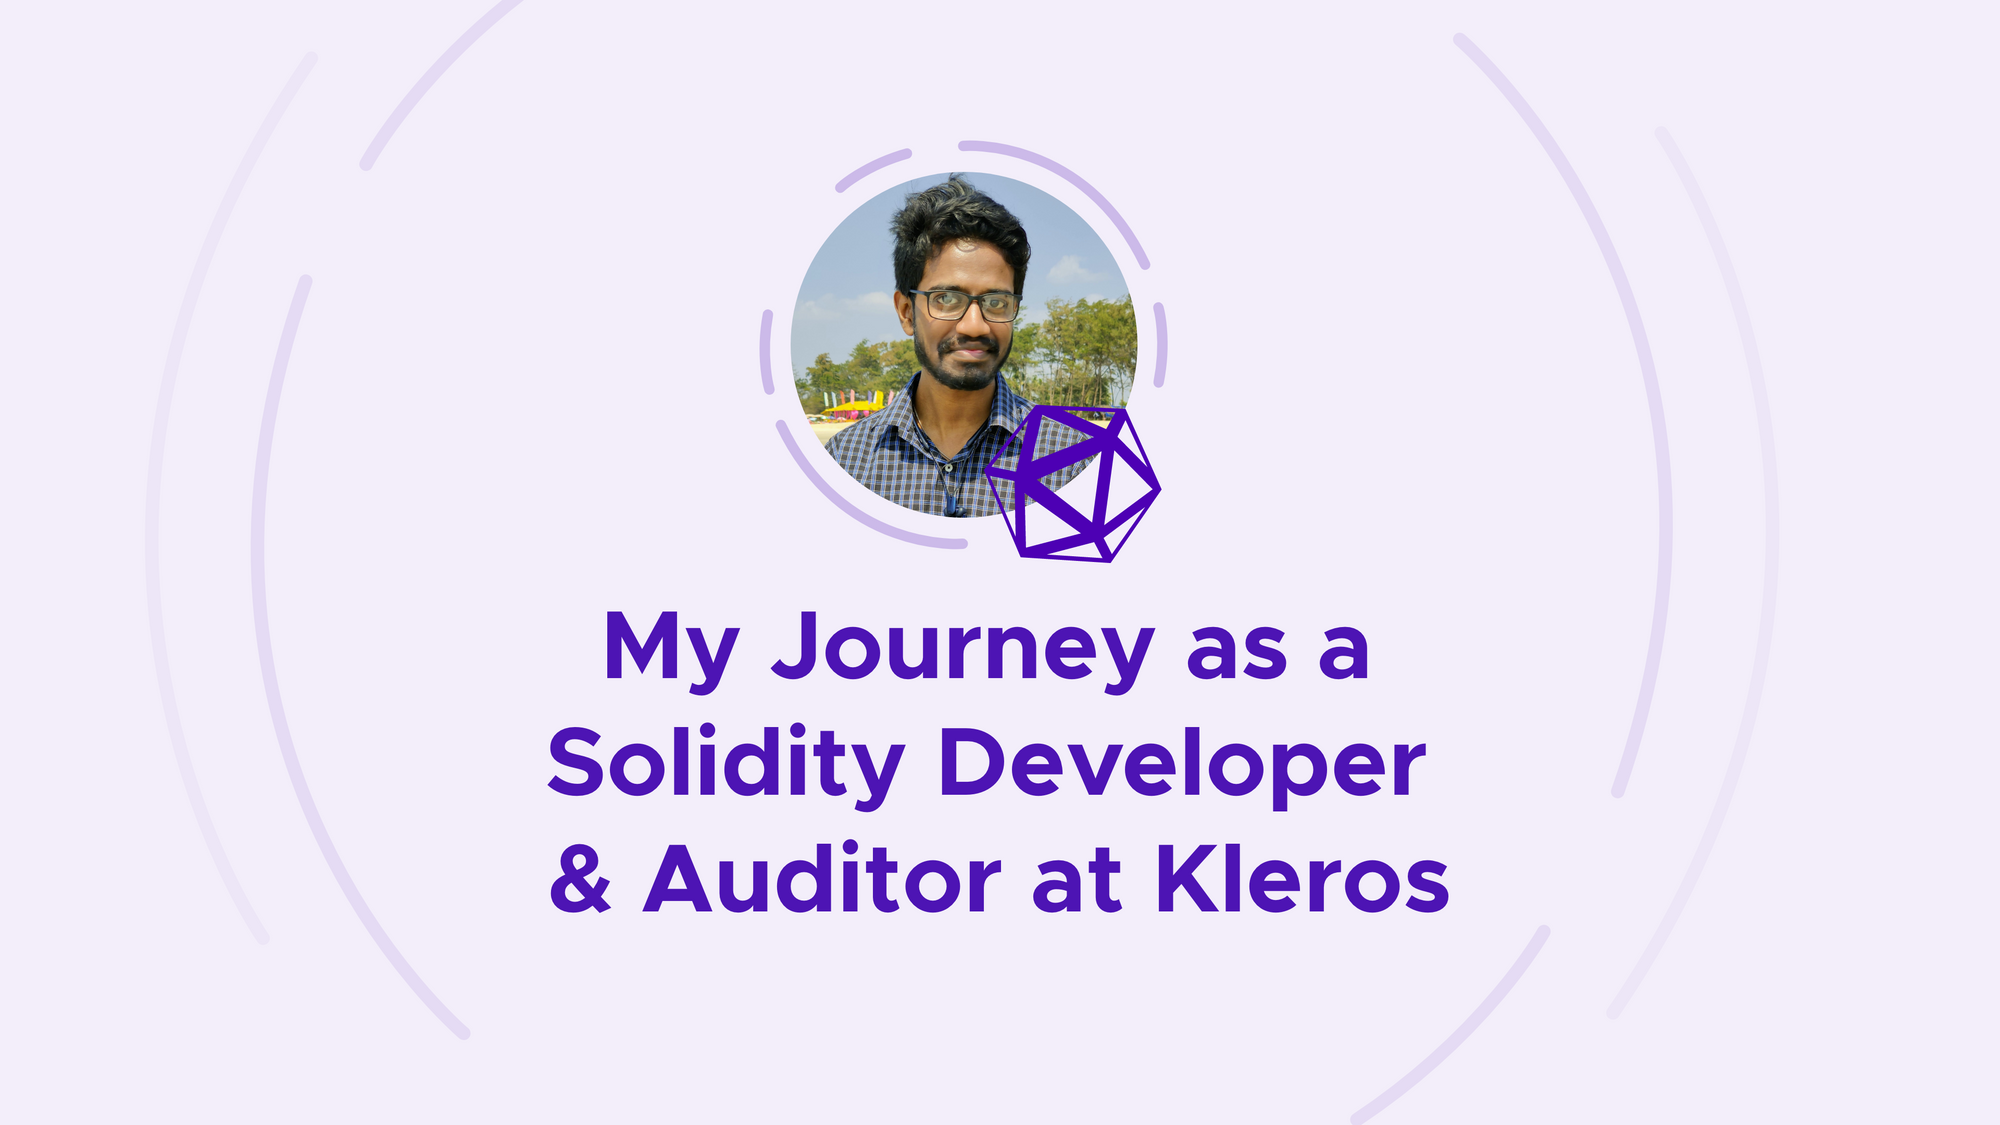 My Journey as a Solidity Developer & Auditor at Kleros